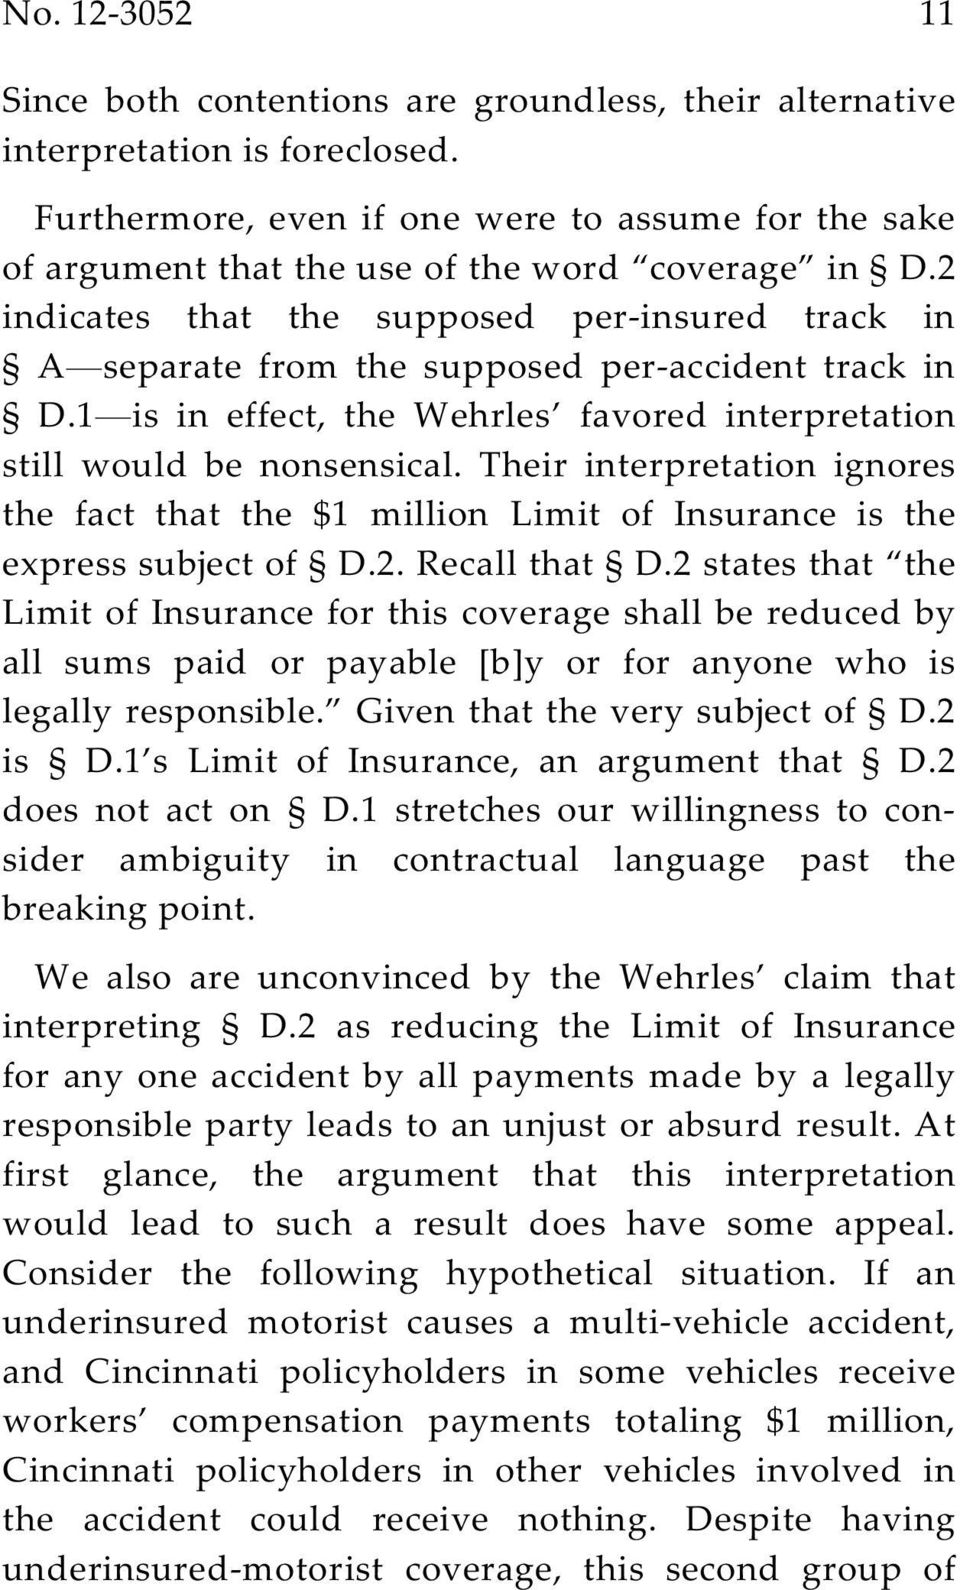 2 indicates that the supposed per-insured track in A separate from the supposed per-accident track in D.1 is in effect, the Wehrles favored interpretation still would be nonsensical.